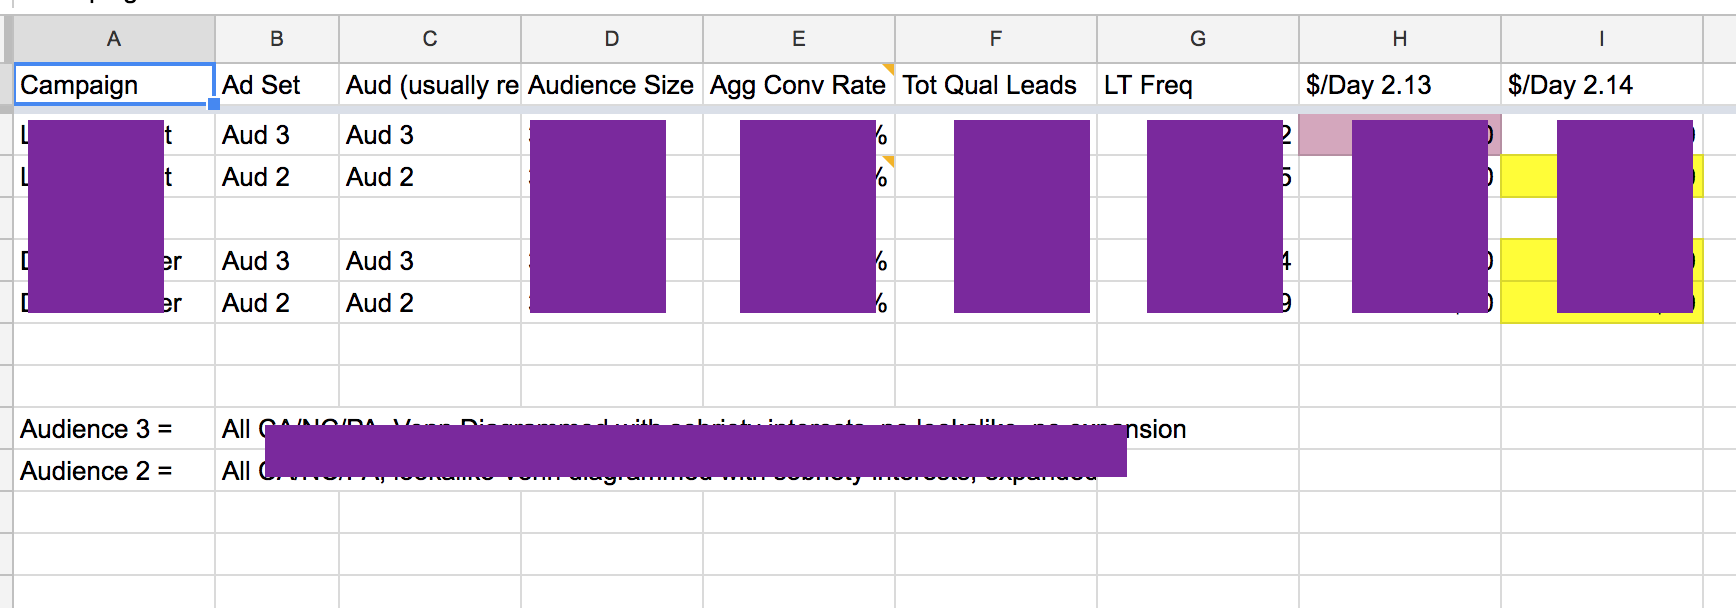 An example of our internal optimization tracking, coyly redacted for maximum intrigue and frustration